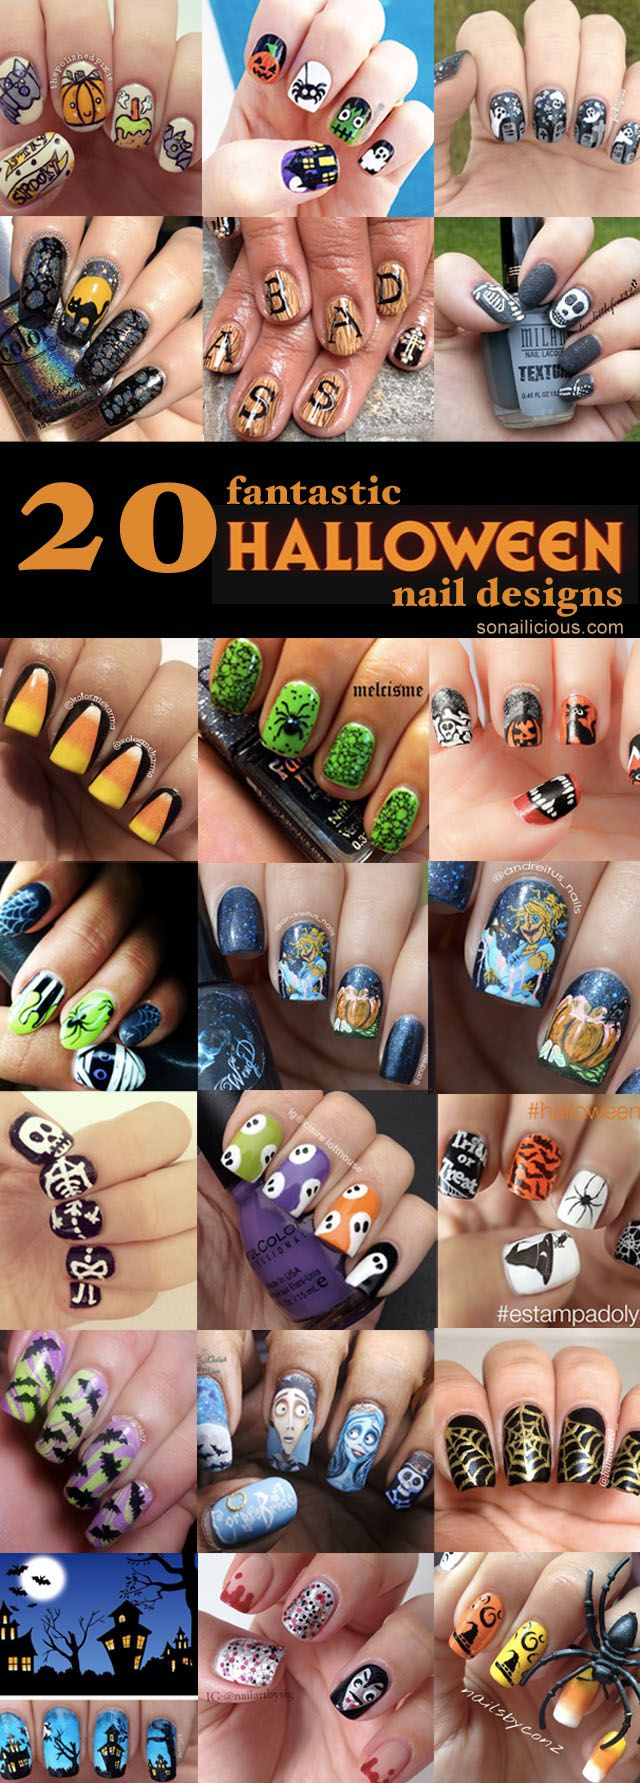 The 20 Halloween nail designs presented today are done by SoNailicious readers. From cute Halloween nails to scary, all great nail designs in one place...